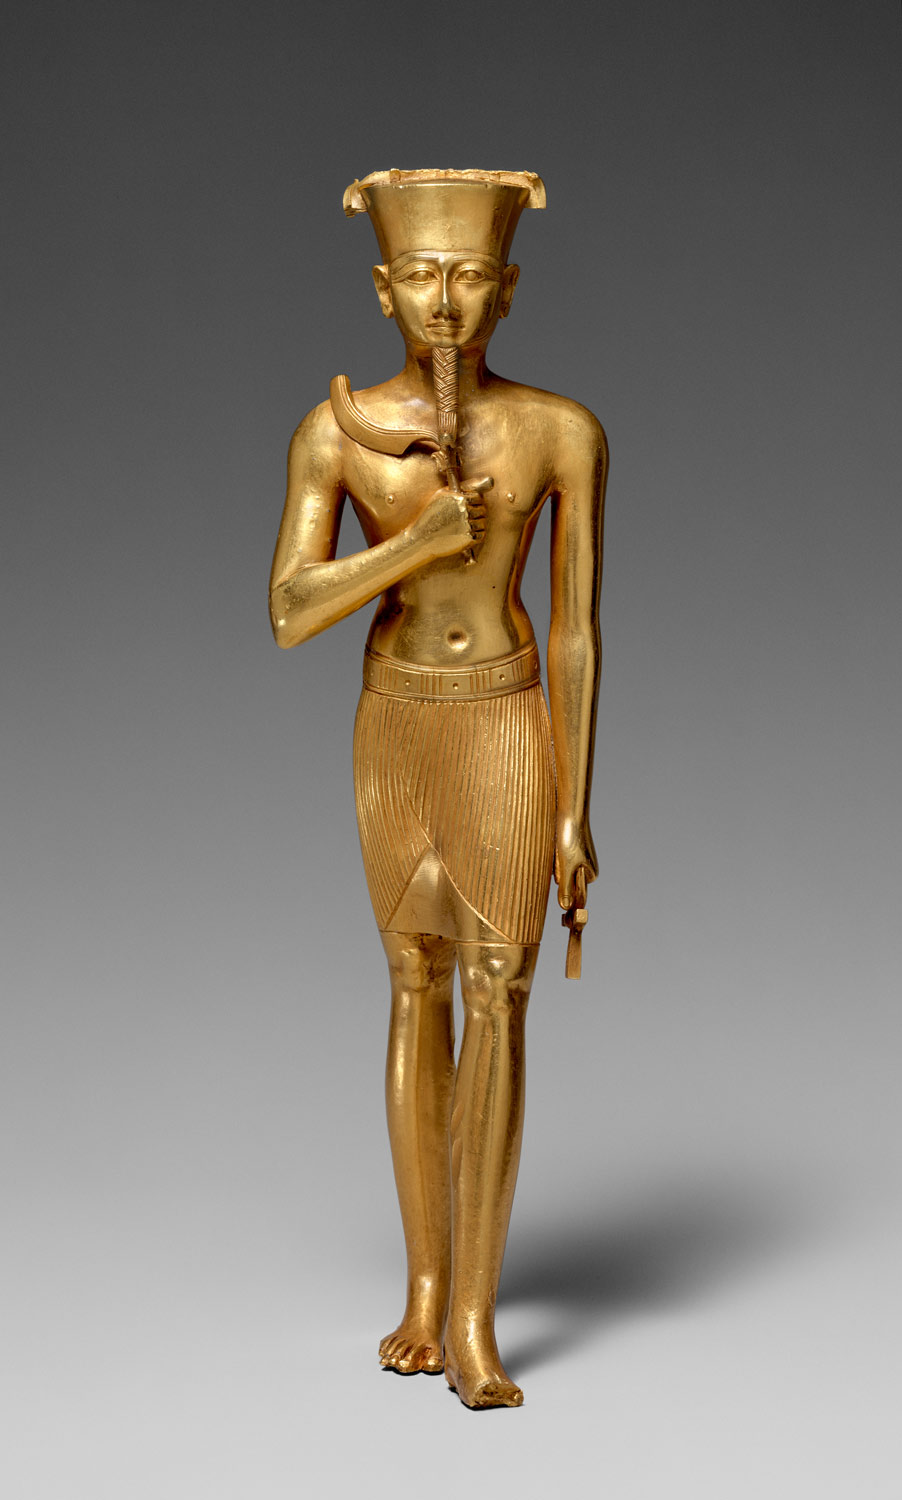 compare egyptian sculpture and greek sculptures Ancient greek art can be classified  •emulates stance of egyptian sculpture but is nude and arms and legs cut away from stone  archaic sculptures seem.